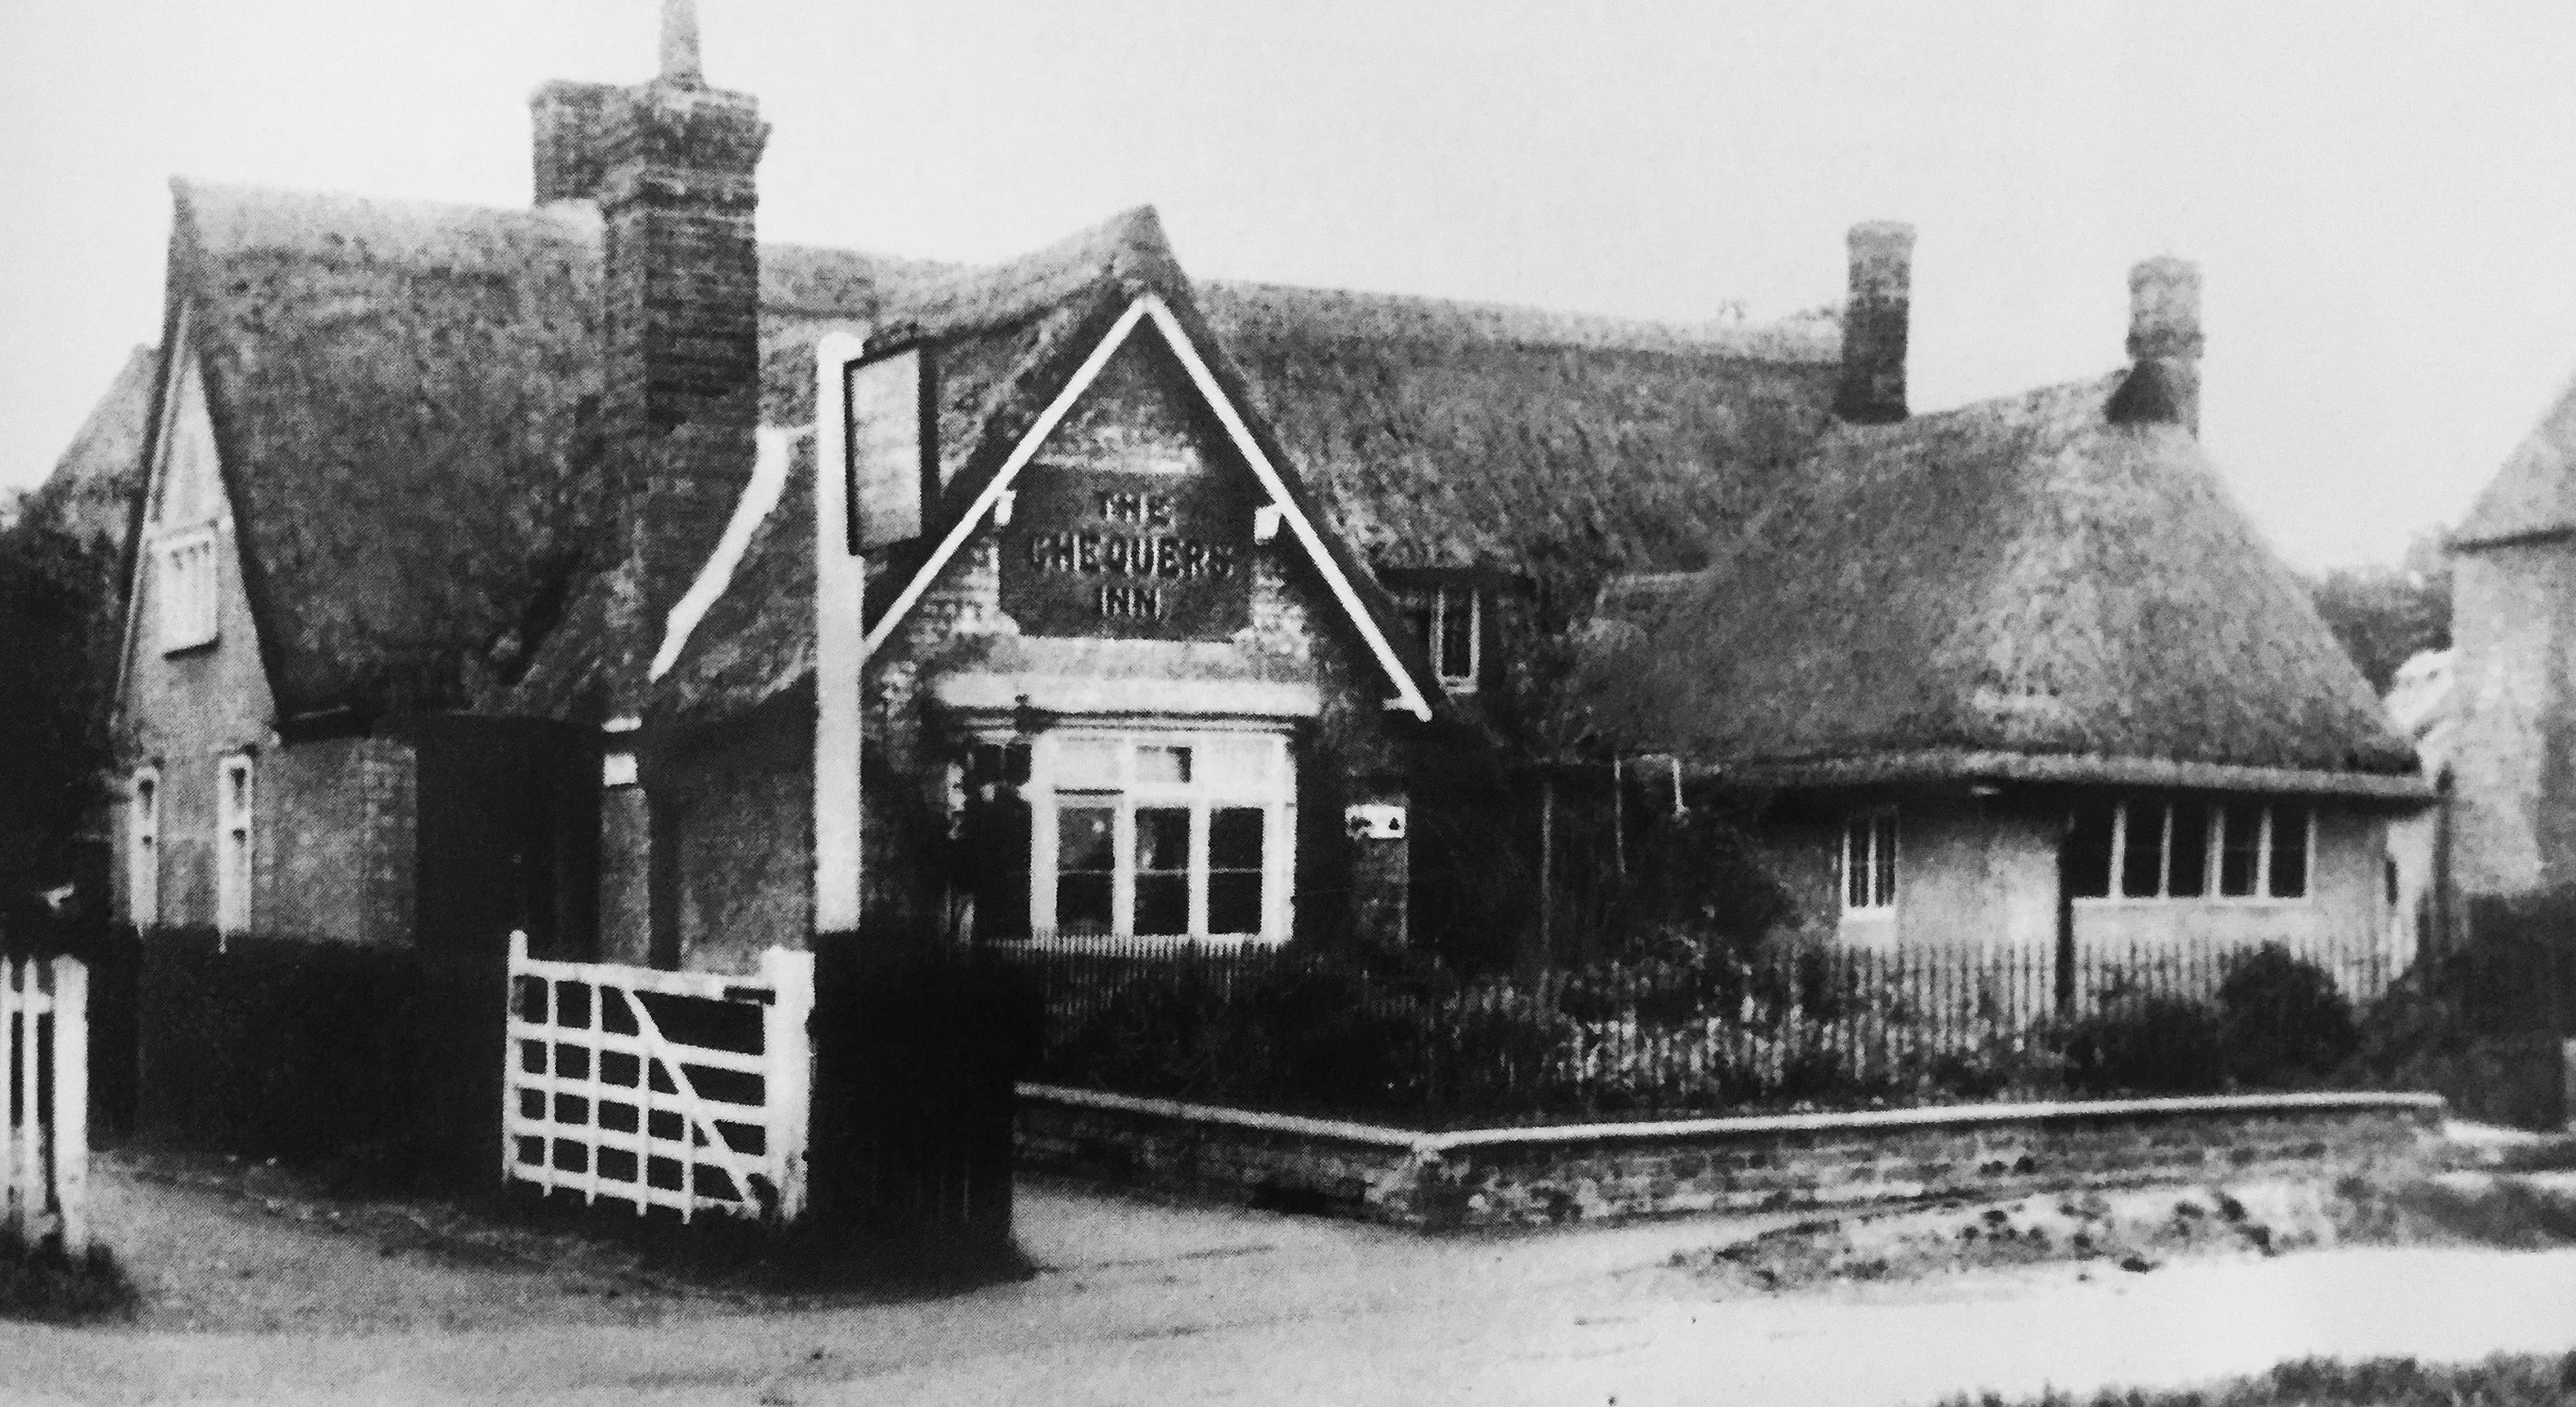 The Chequers Inn, Yelden, pre-1950